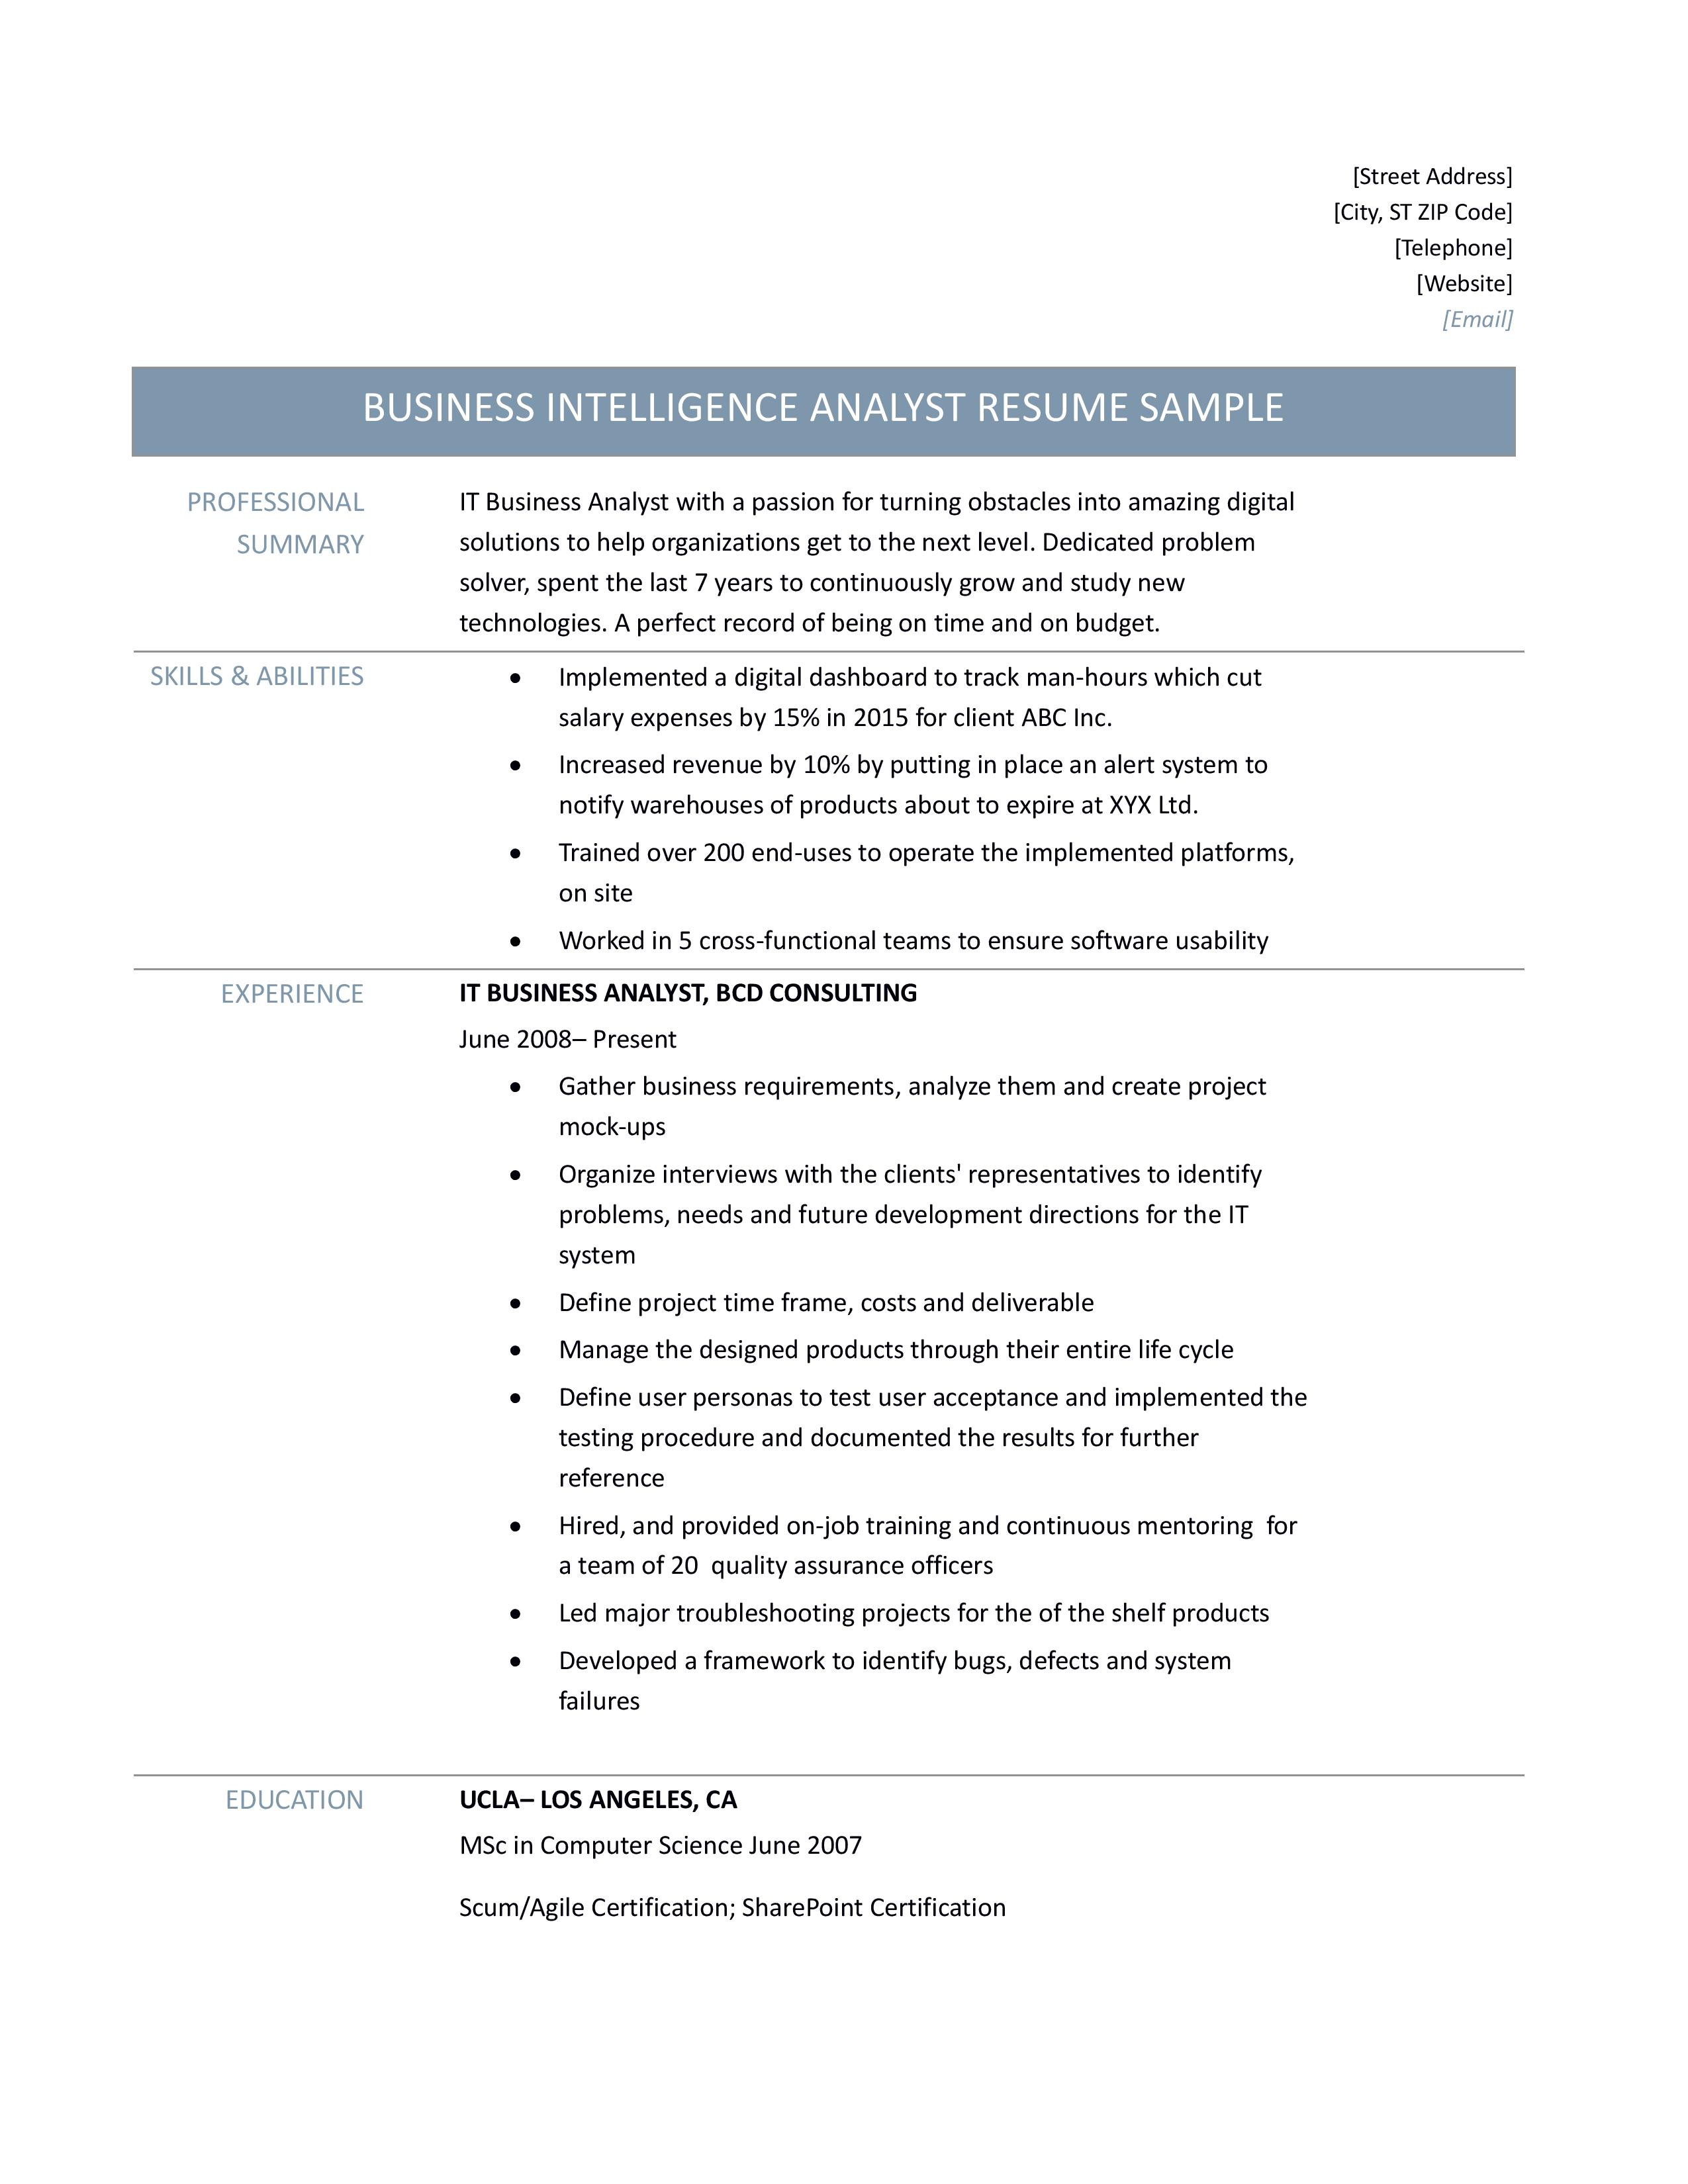 IT Business Analyst Resume Samples Tips And Templates